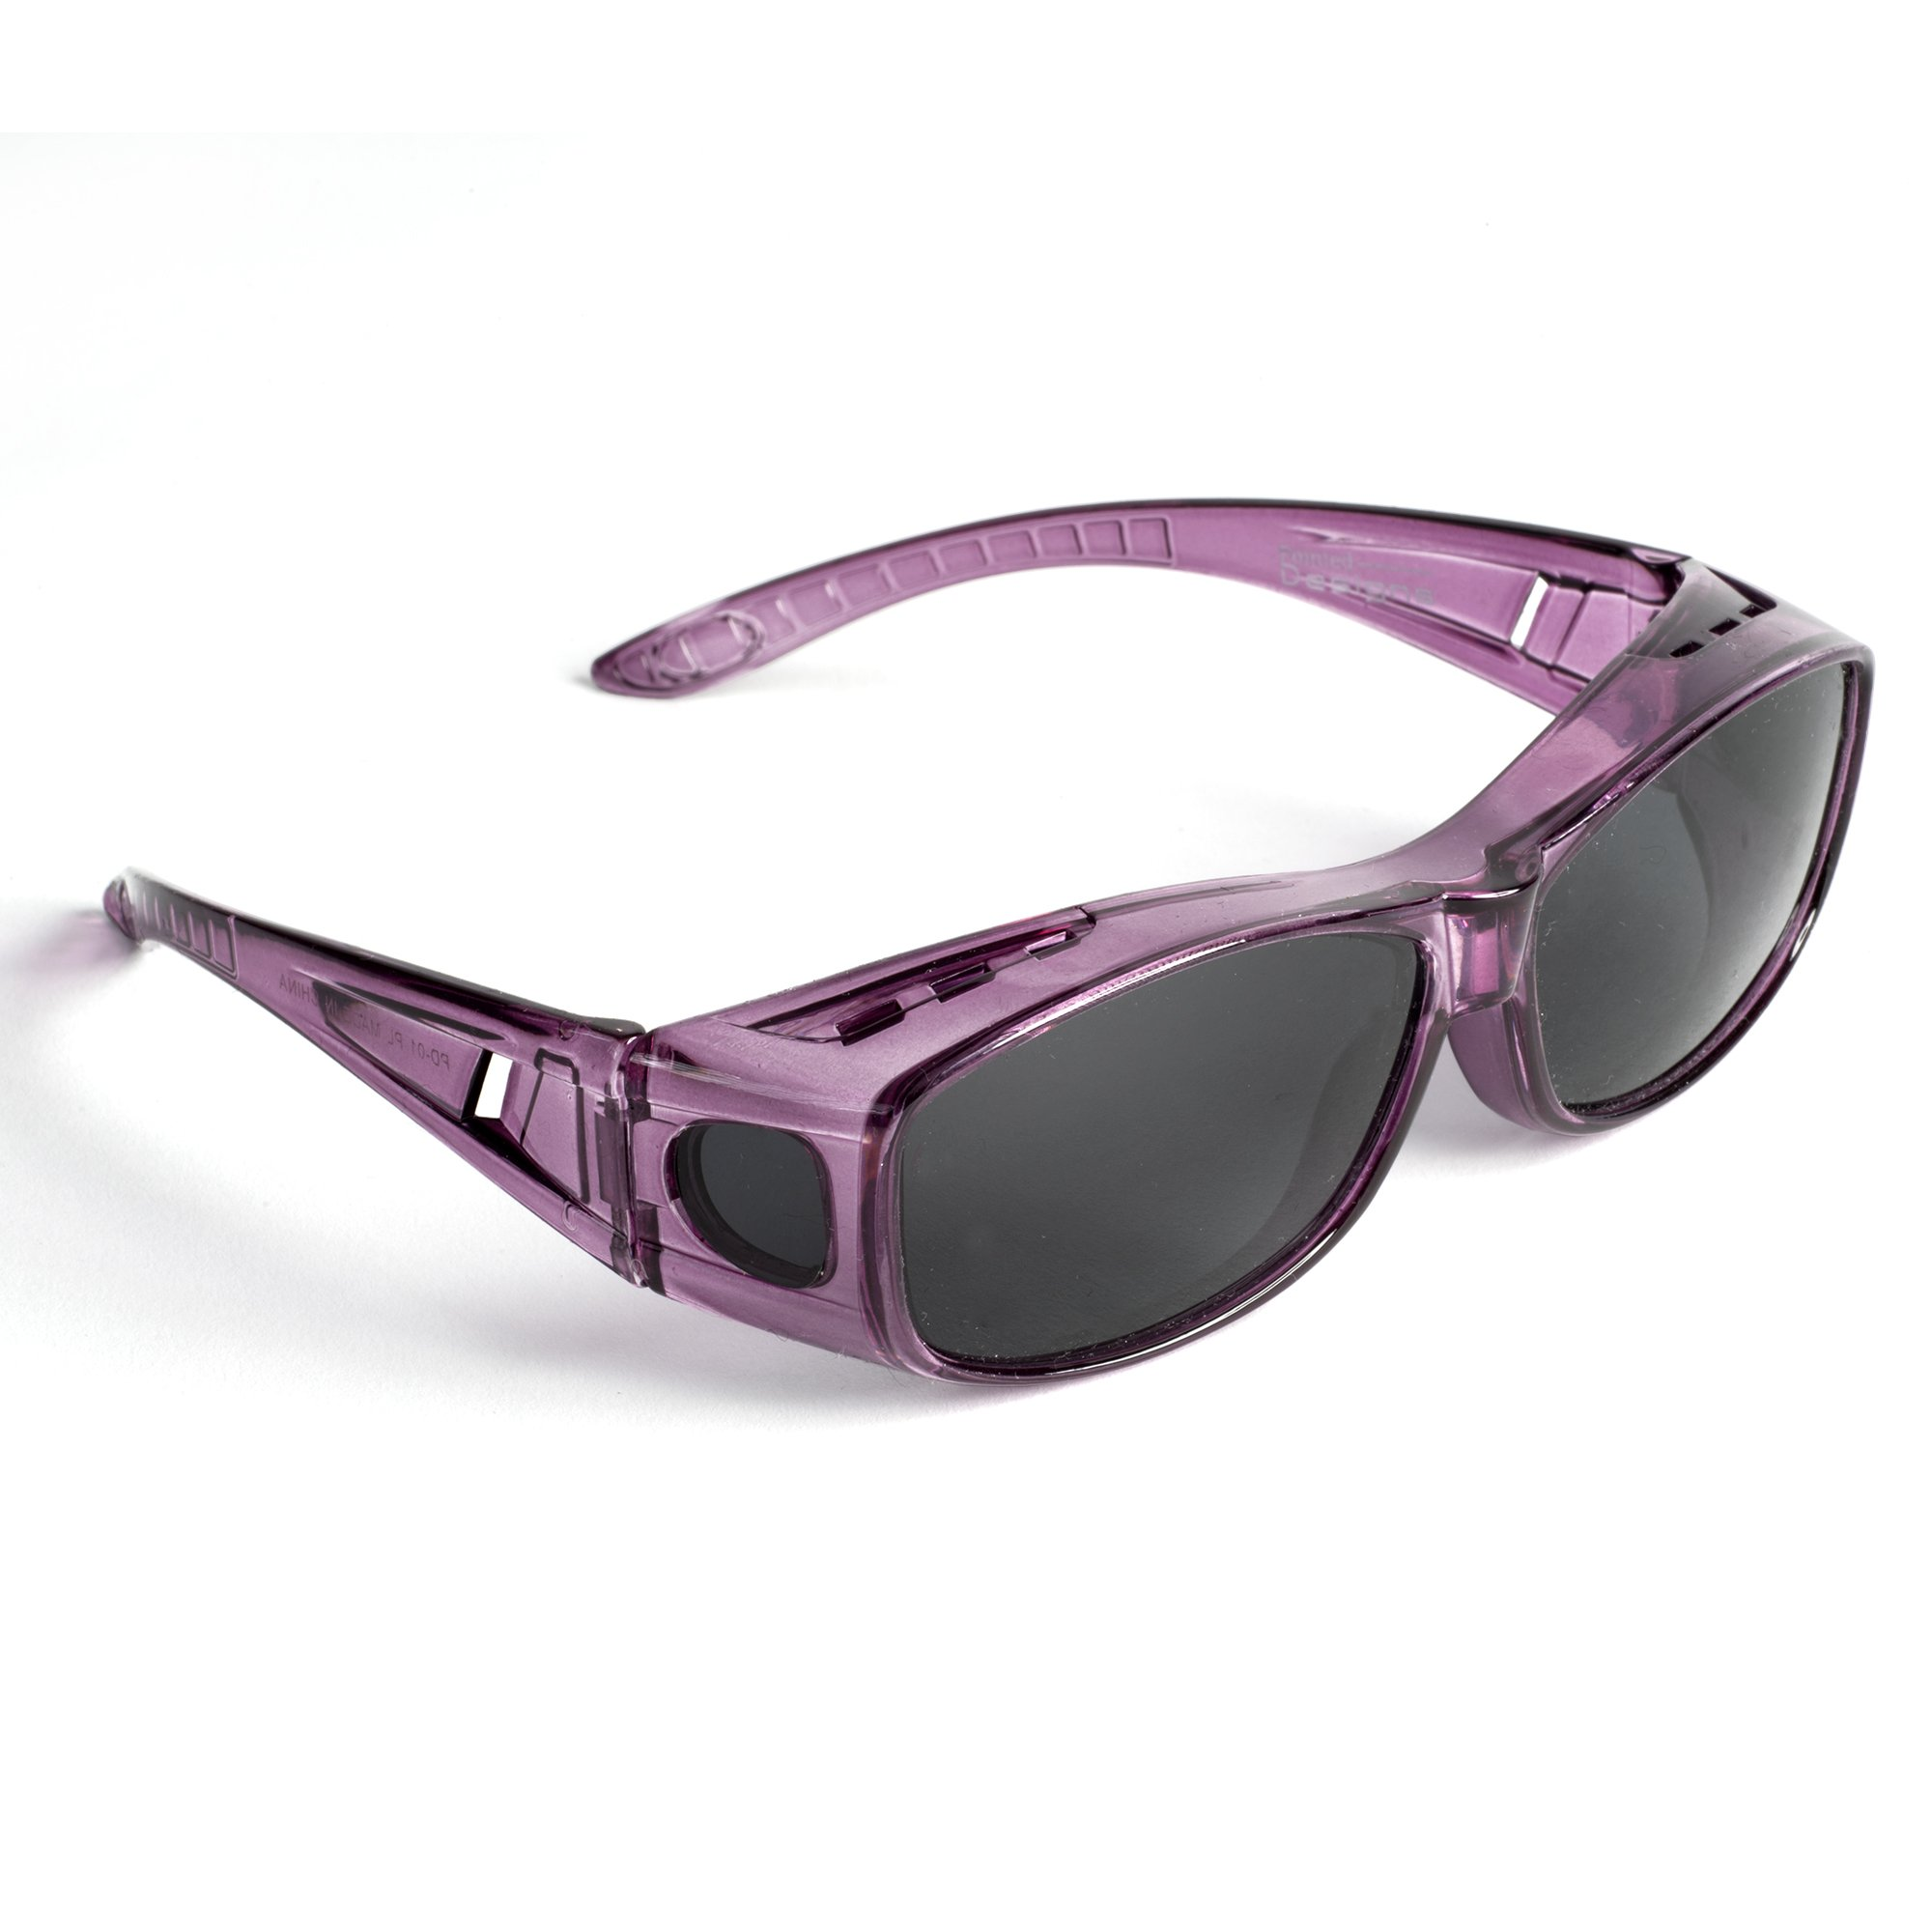 Over Glasses Sunglasses - Polarized Fitover Sunglasses with 100% UV Protection - Style 1 By Pointed Designs (Purple)